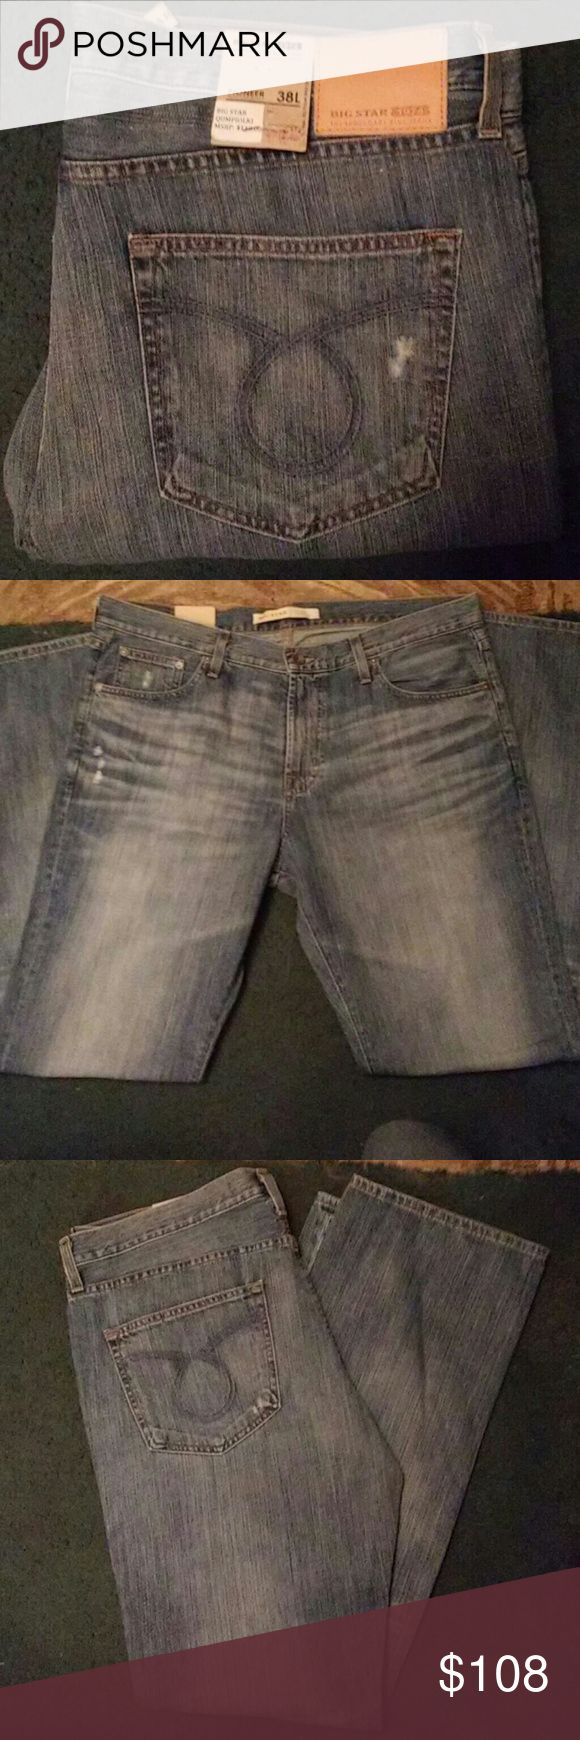 Big Star Jeans for men Brand New Big Star QUMPIOLKI Jeans for Men with tags. Its a Pioneer regular Boot with a size 38L. Its a light blue denim. No flaws what so ever. Dont be afraid to make a offer Big Star Jeans Bootcut